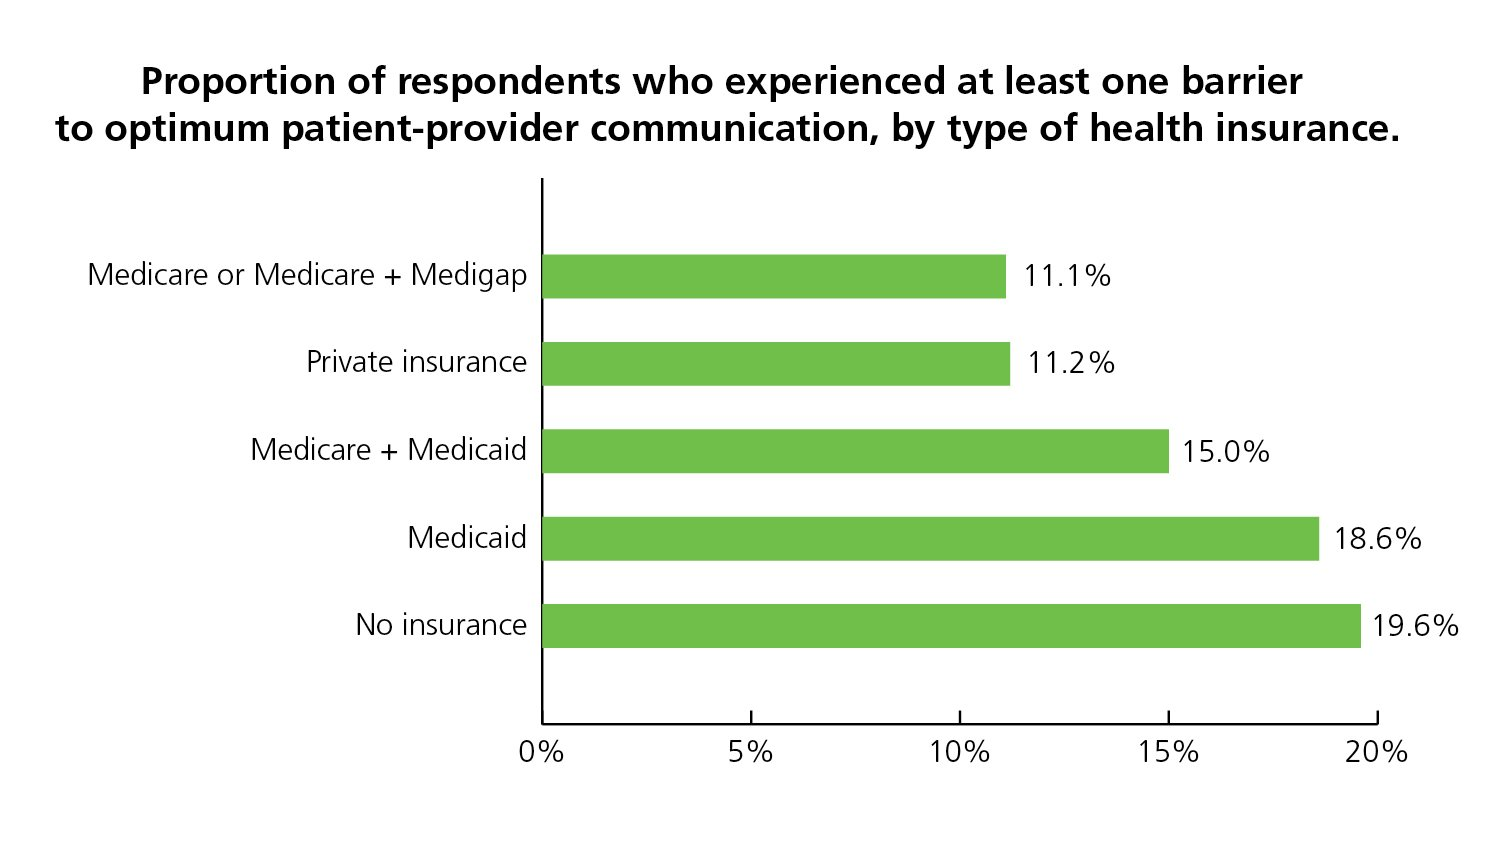 Uninsured people and those with Medicaid are more likely to report problems with patient-provider communications than are people with Medicare or private insurance.